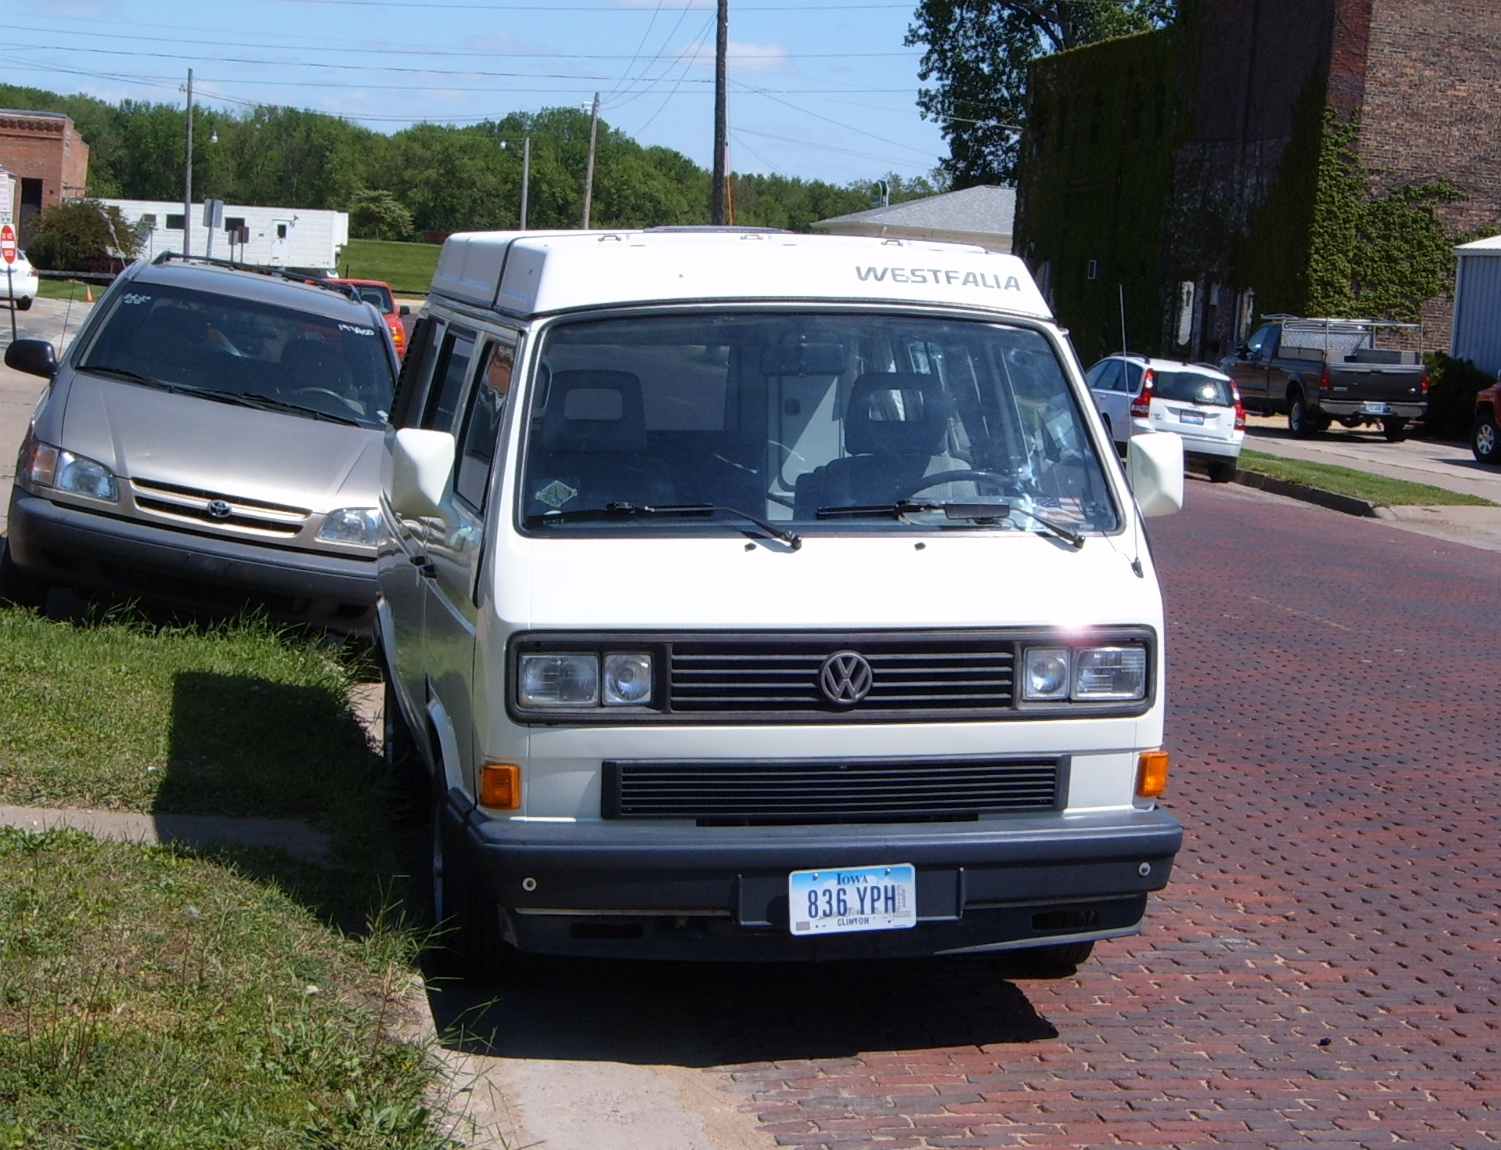 Volkswagen bus vanagon take a look volkswagon new interior run and - Interestingly Westfalia Vanagons Were Not Called Such In Literature And Advertising They Were Simply The Vanagon Camper Though Westfalia The Winnebago